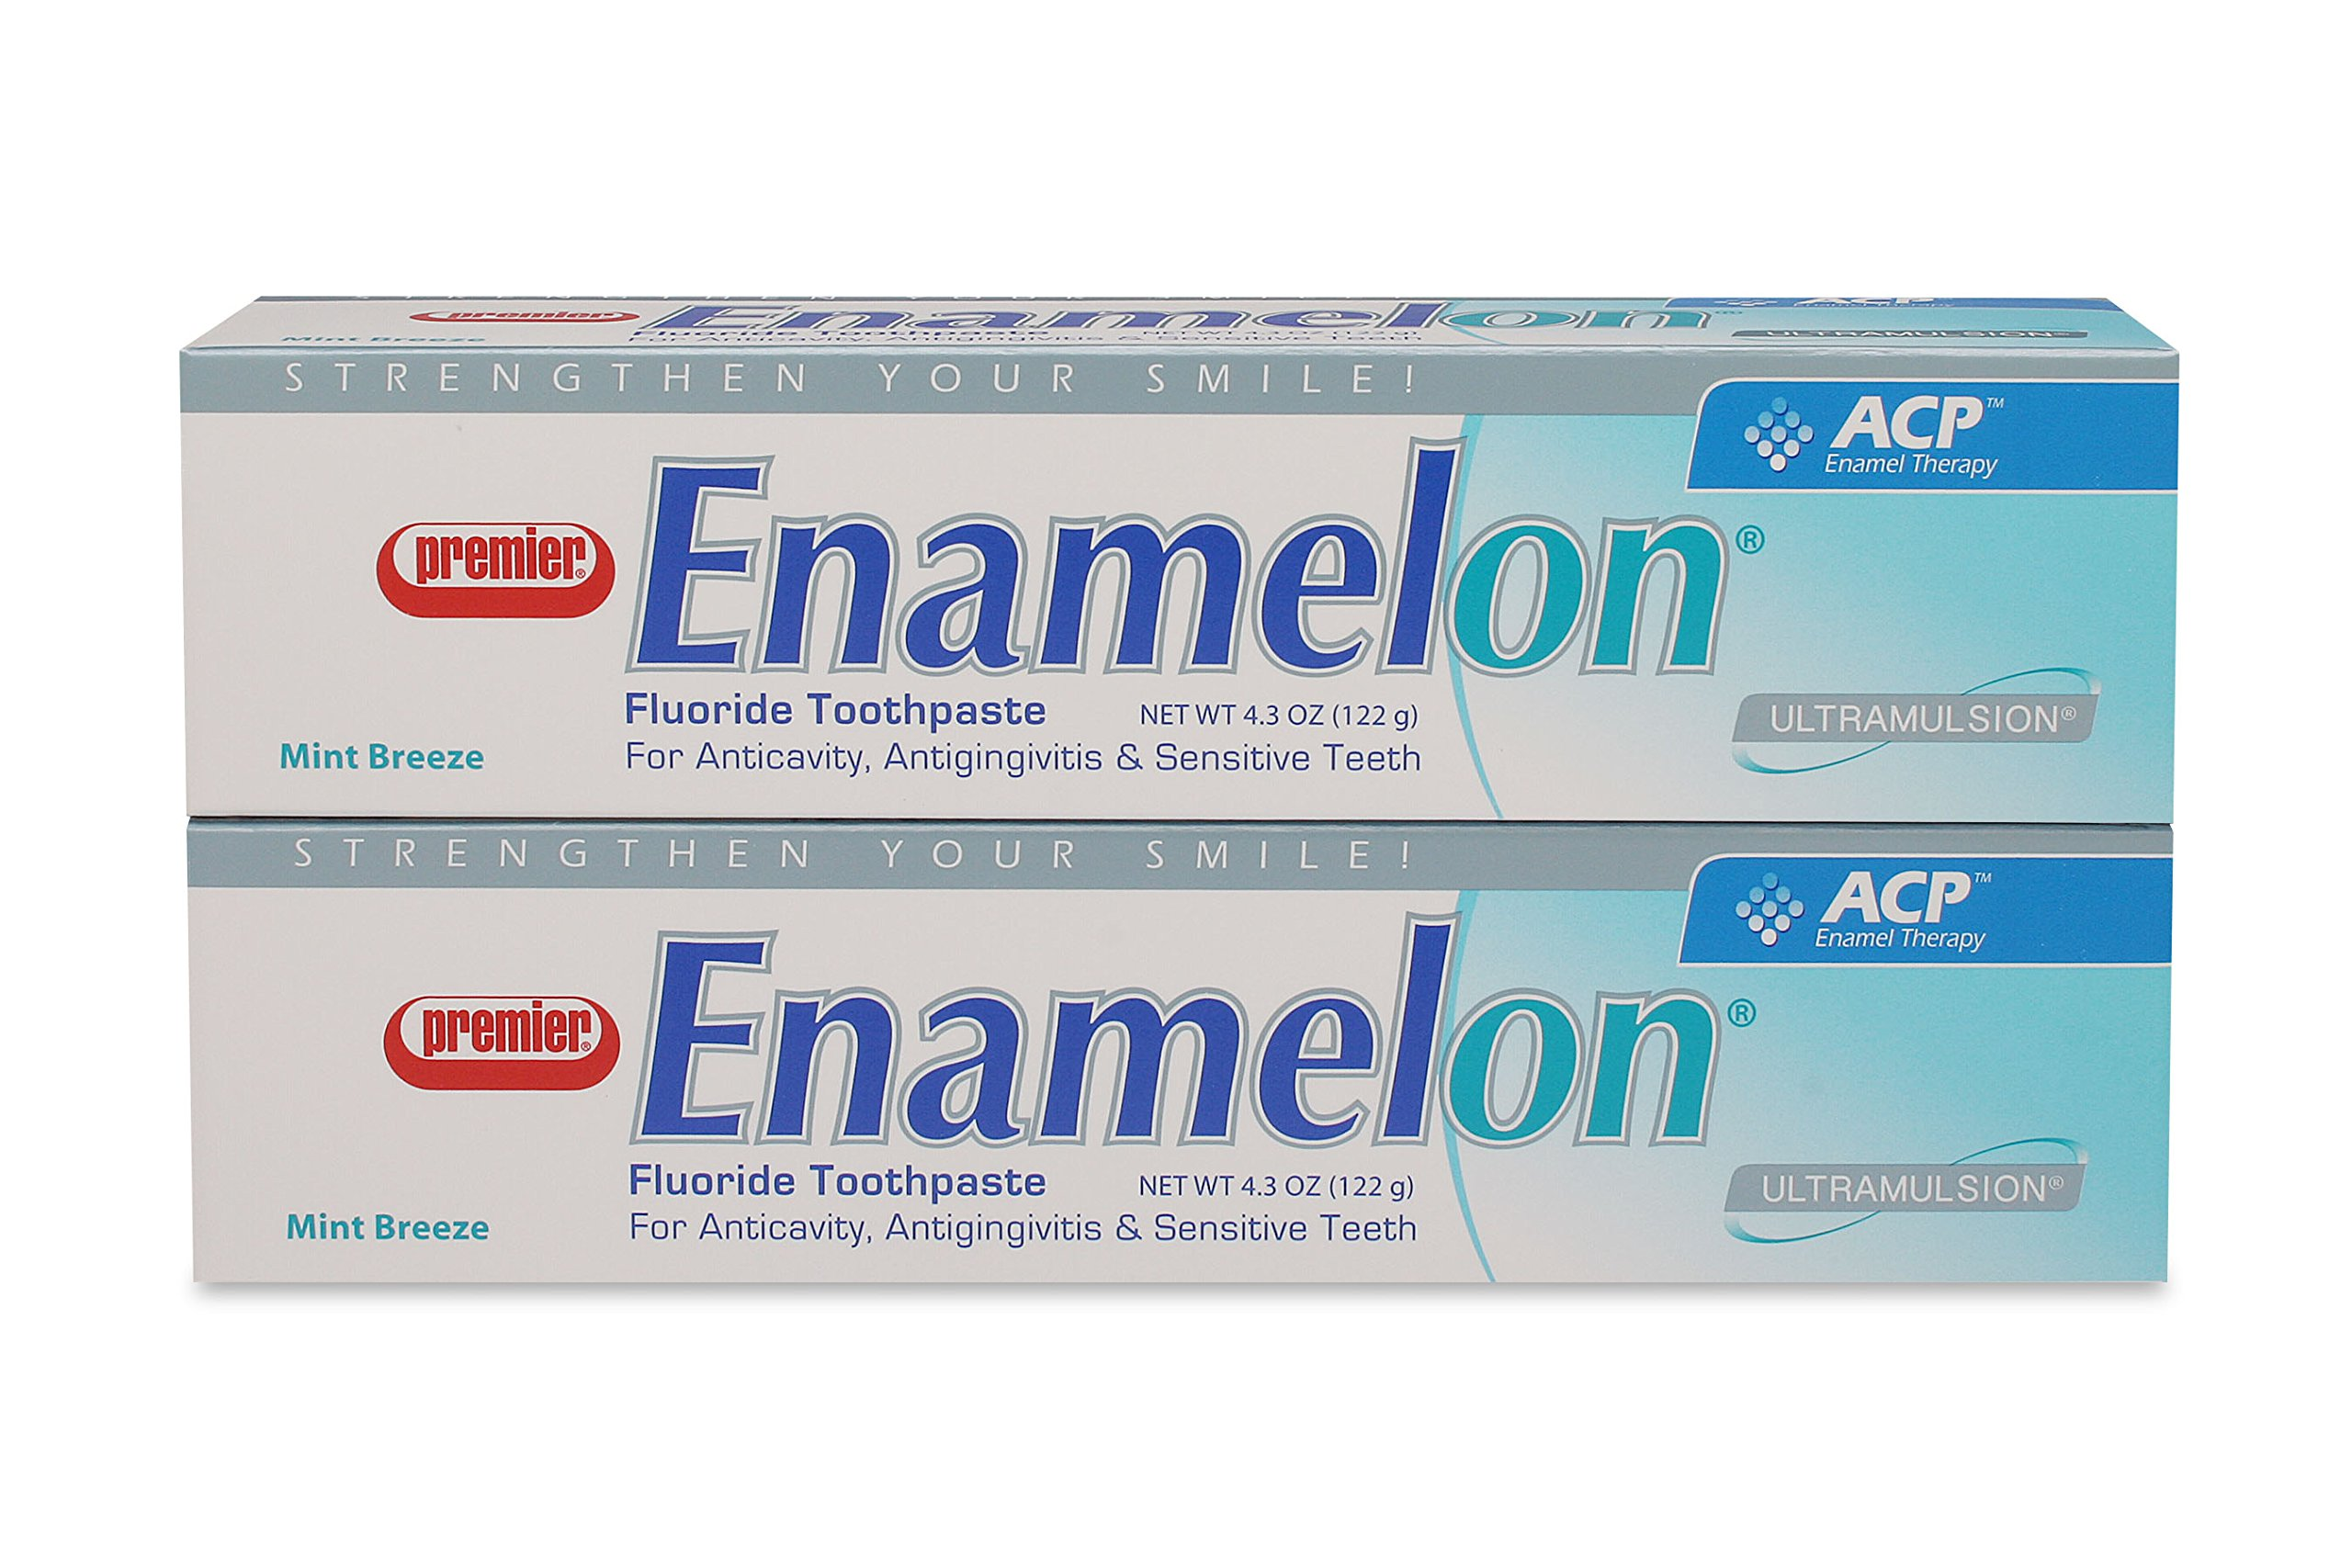 Premier 9007270 Enamelon Toothpaste Mint Breeze, 122 g, White (Pack of 2) by Premier